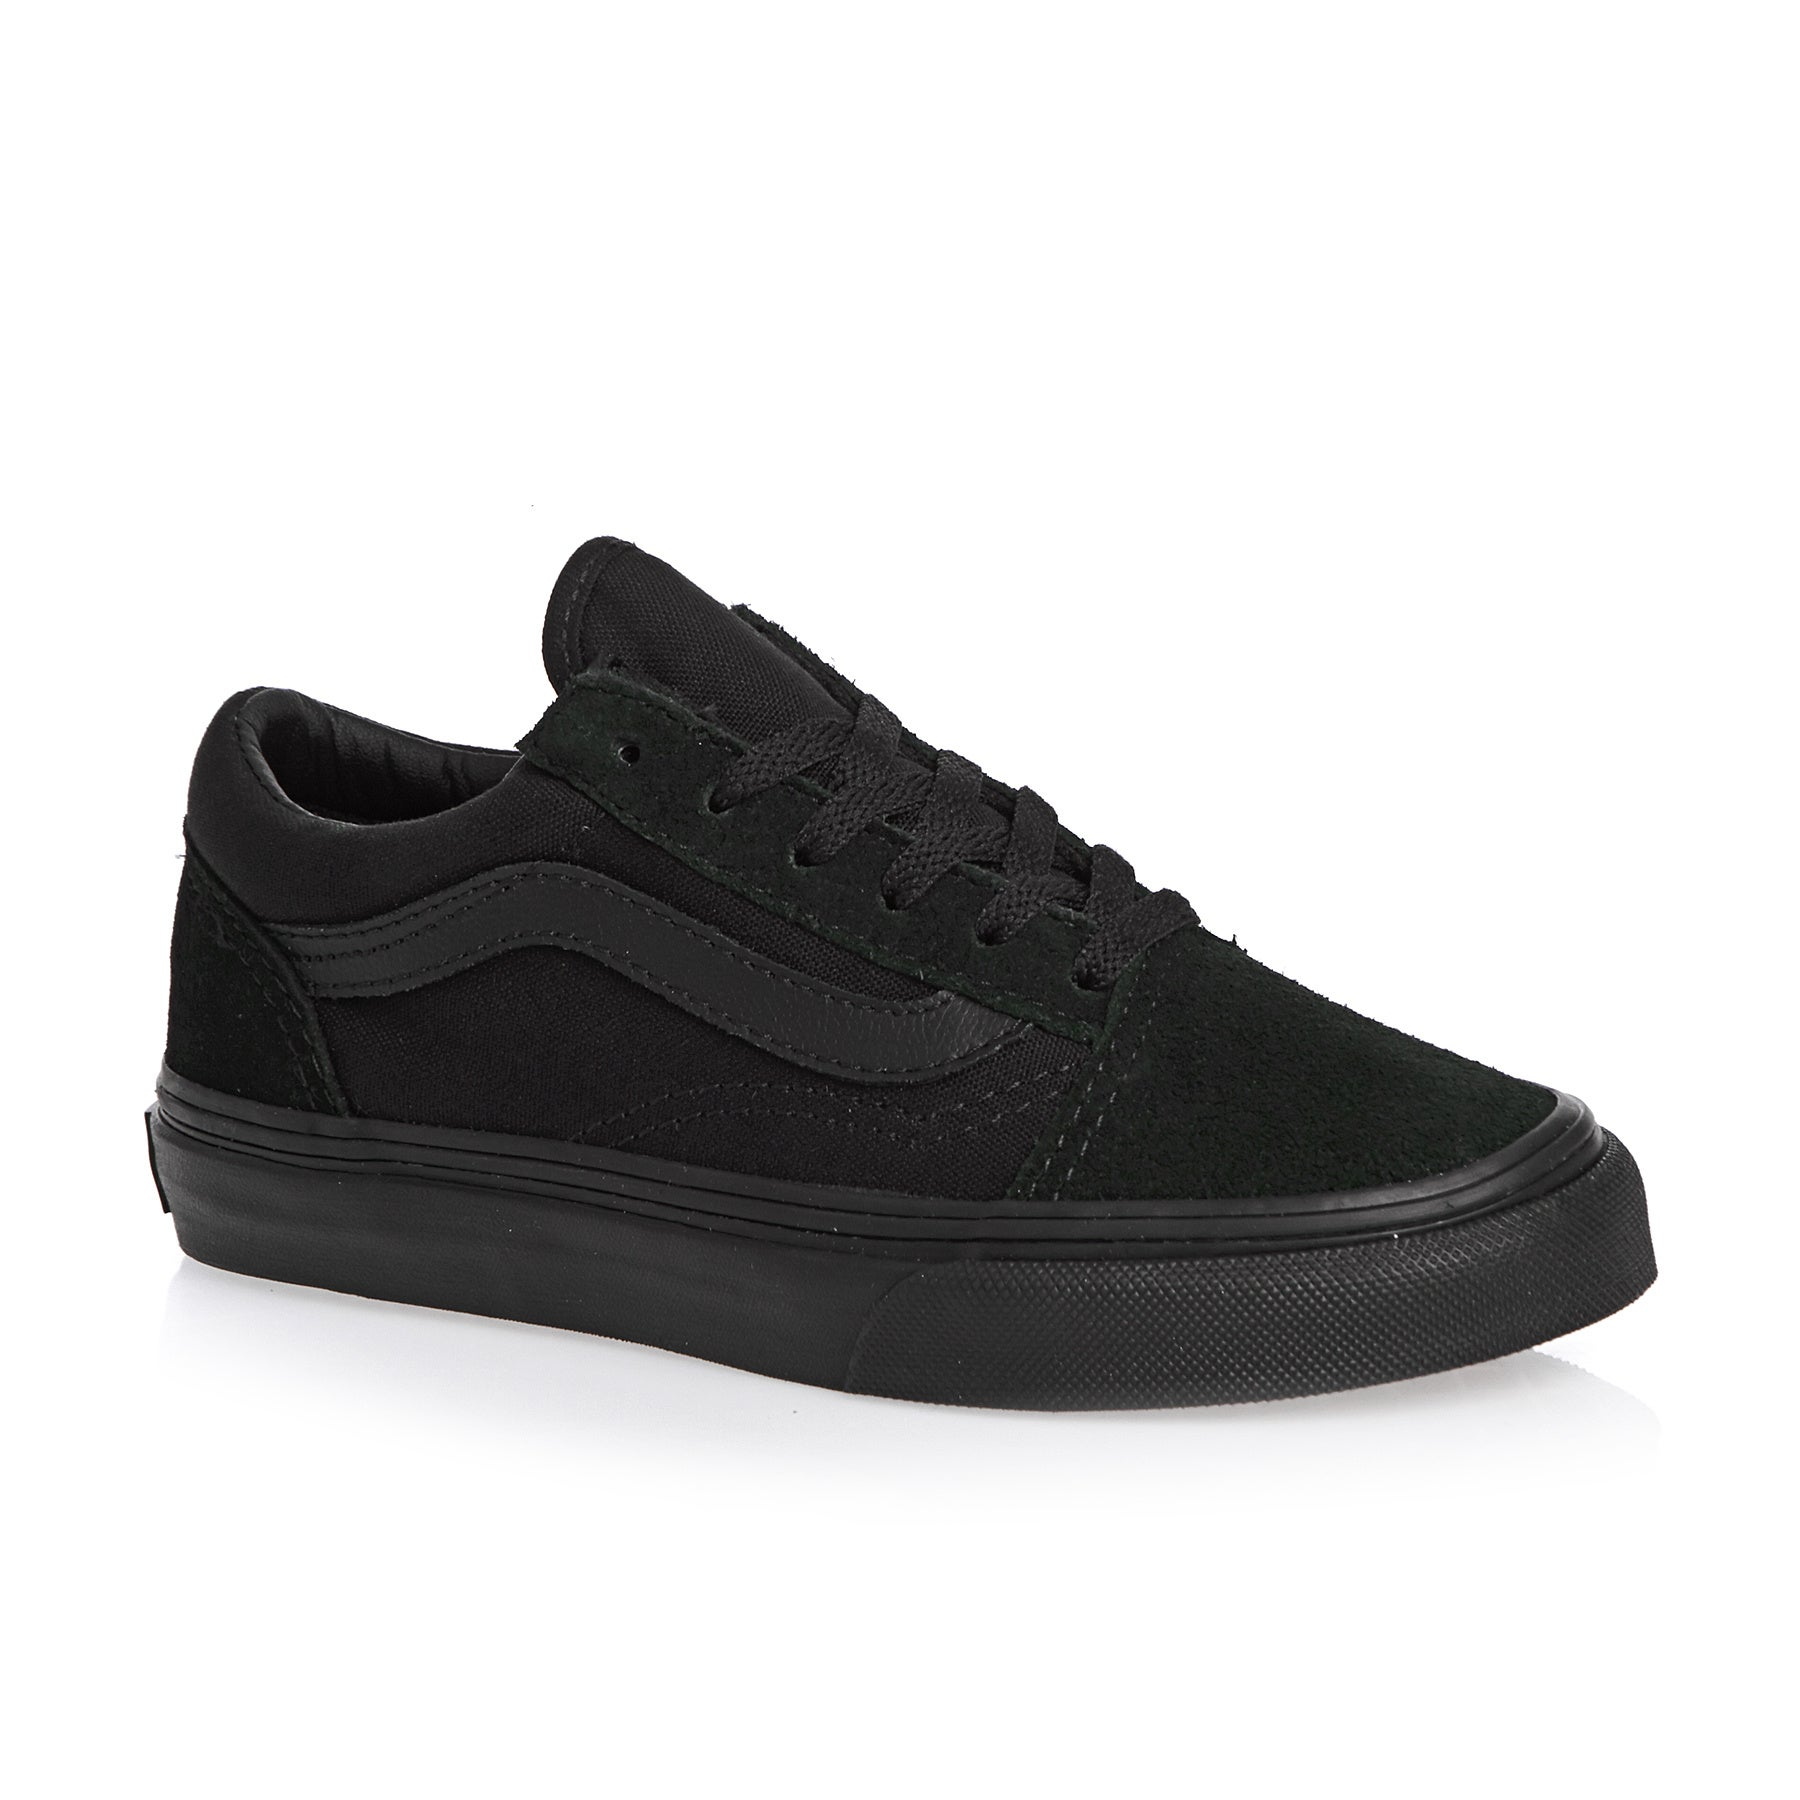 Vans Old Skool Boys Shoes